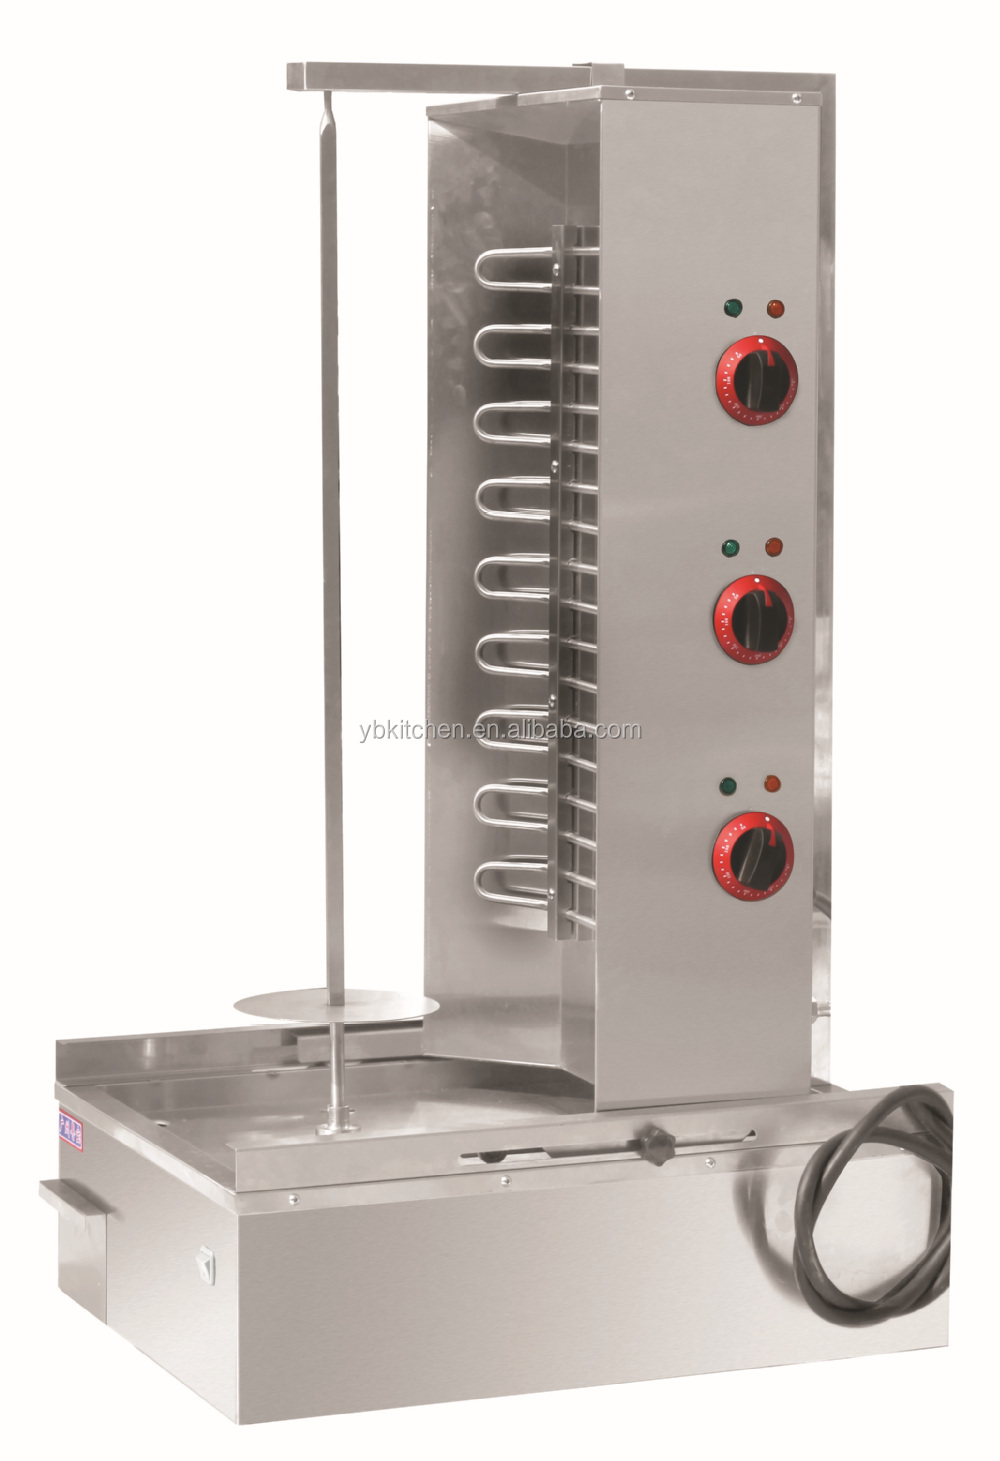 electric shawarma machine